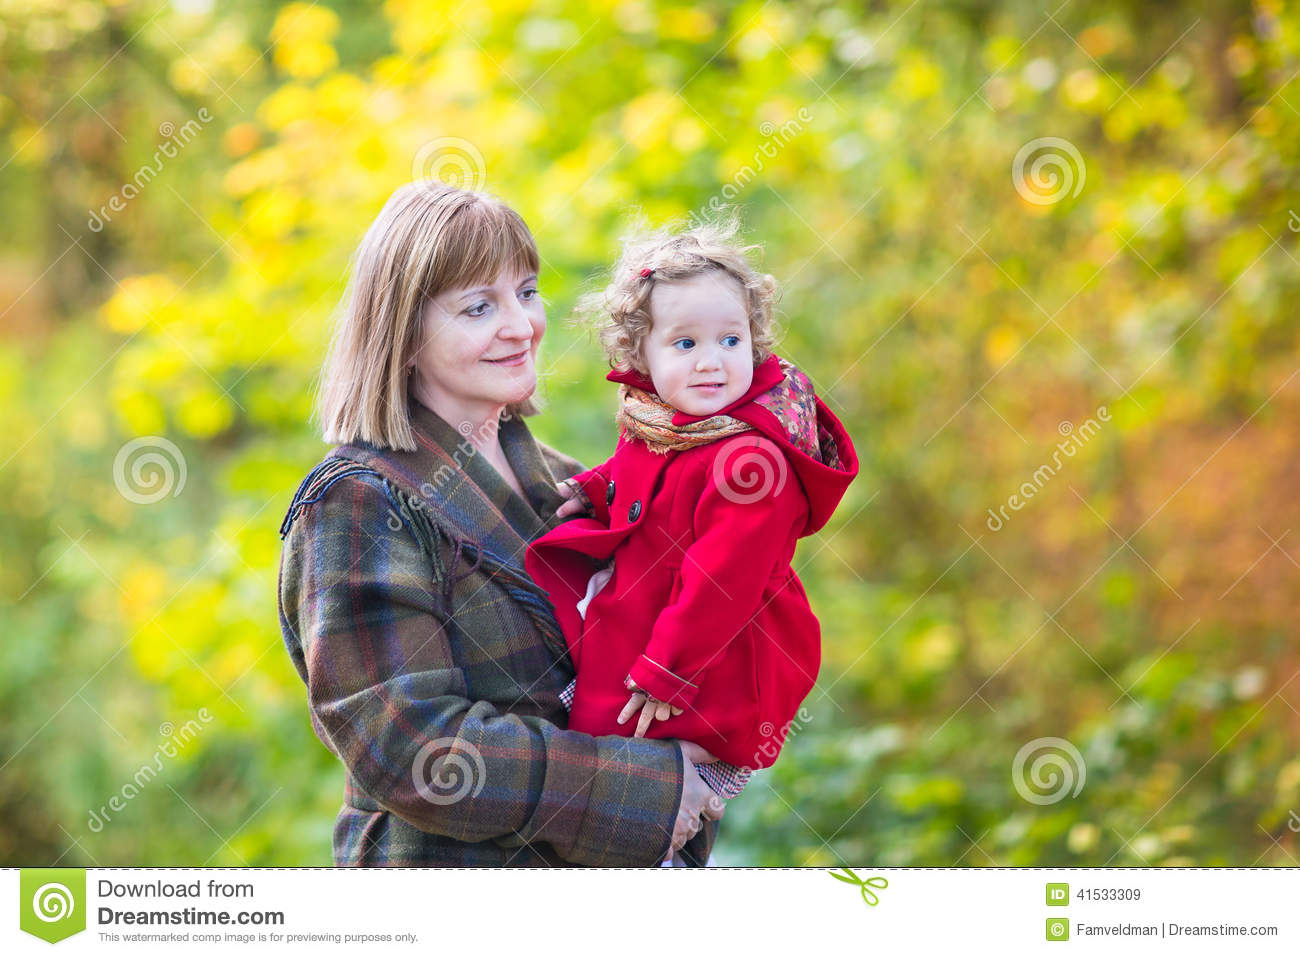 Elegant woman with little toddler girl in autumn park